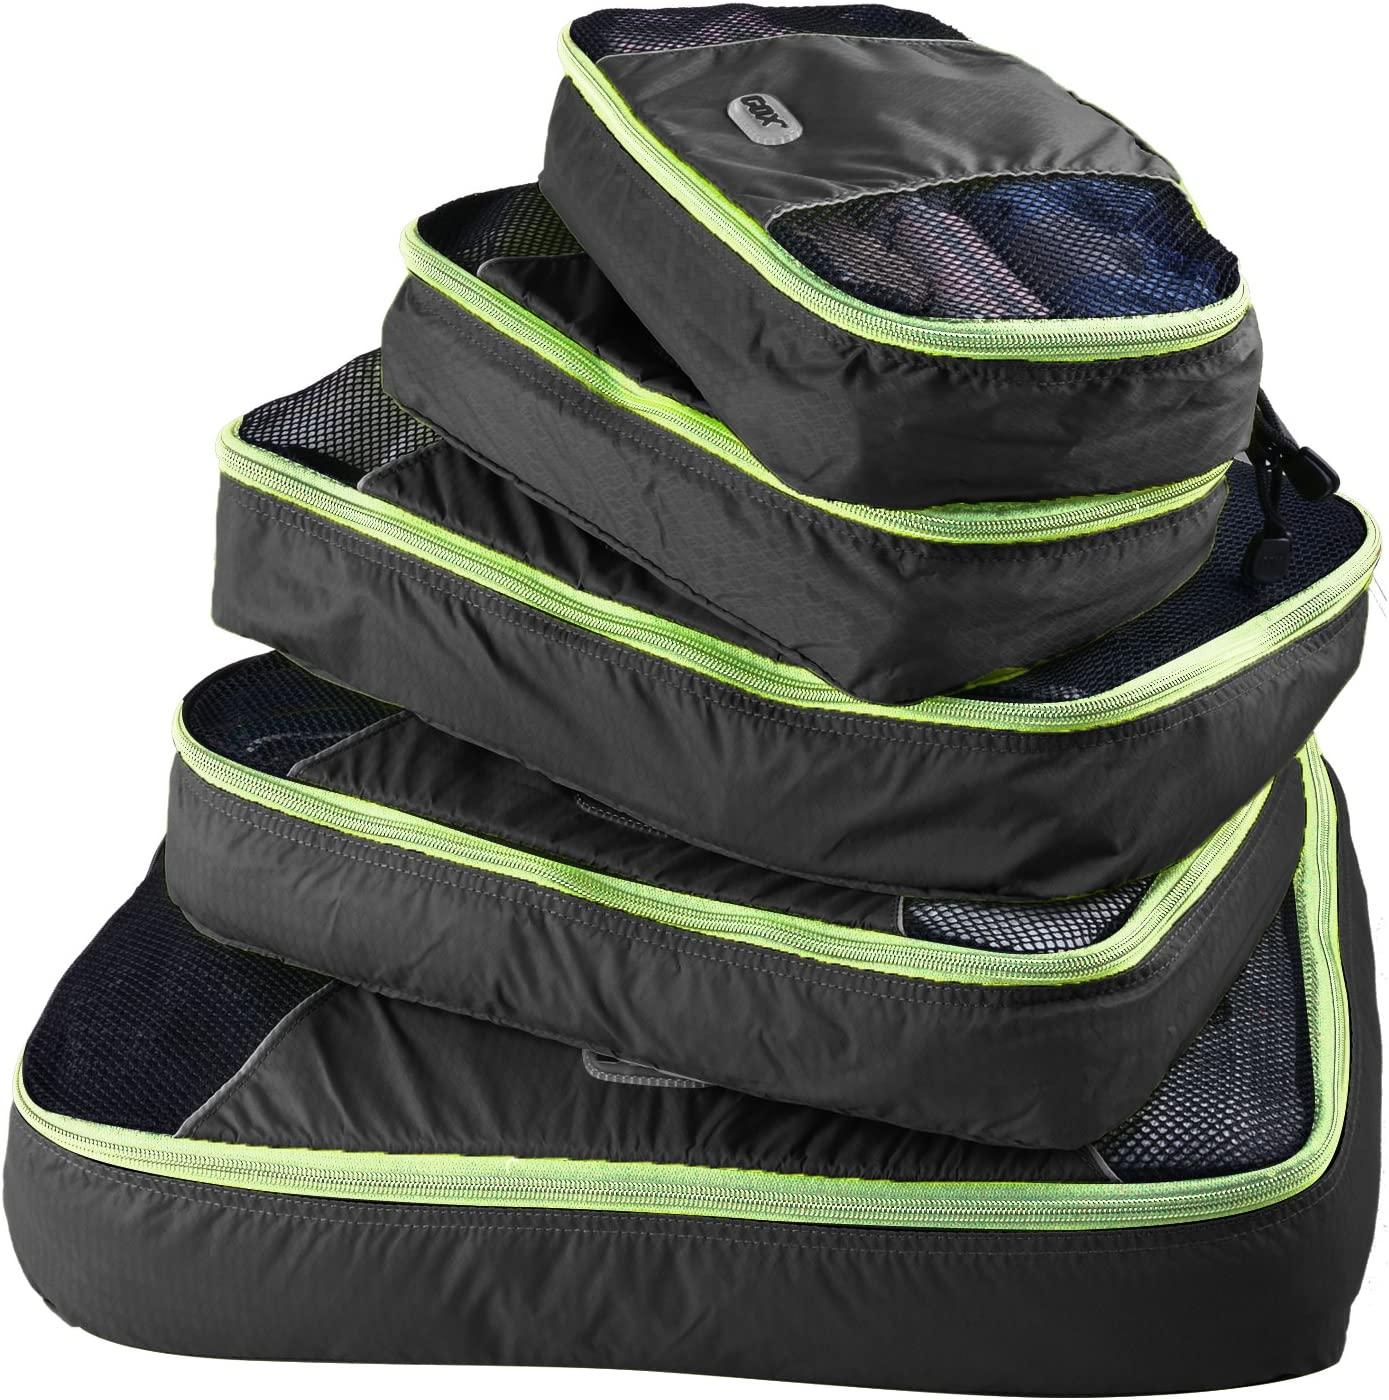 GOX Ultra Light 5 piece Packing Cubes Travel Luggage Organizers Laundry Bag 1 Large 2 Medium 2 Small (Black)